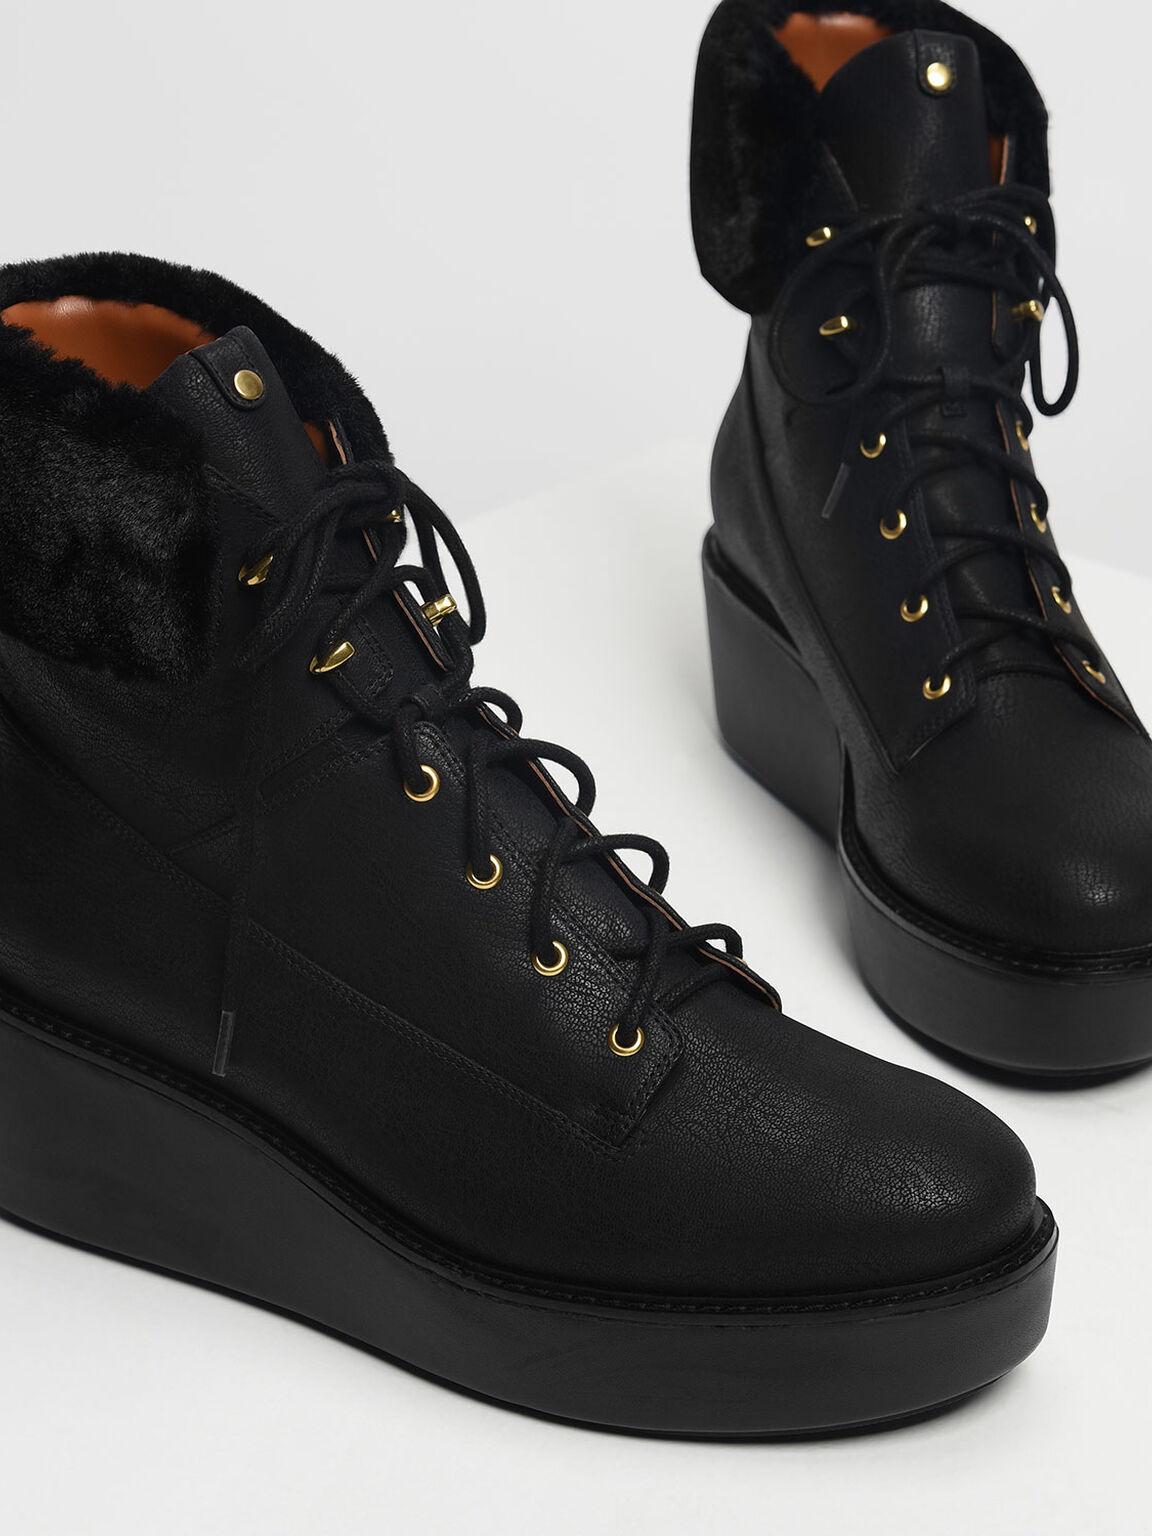 Furry Cuff Laced Up Boots, Black, hi-res